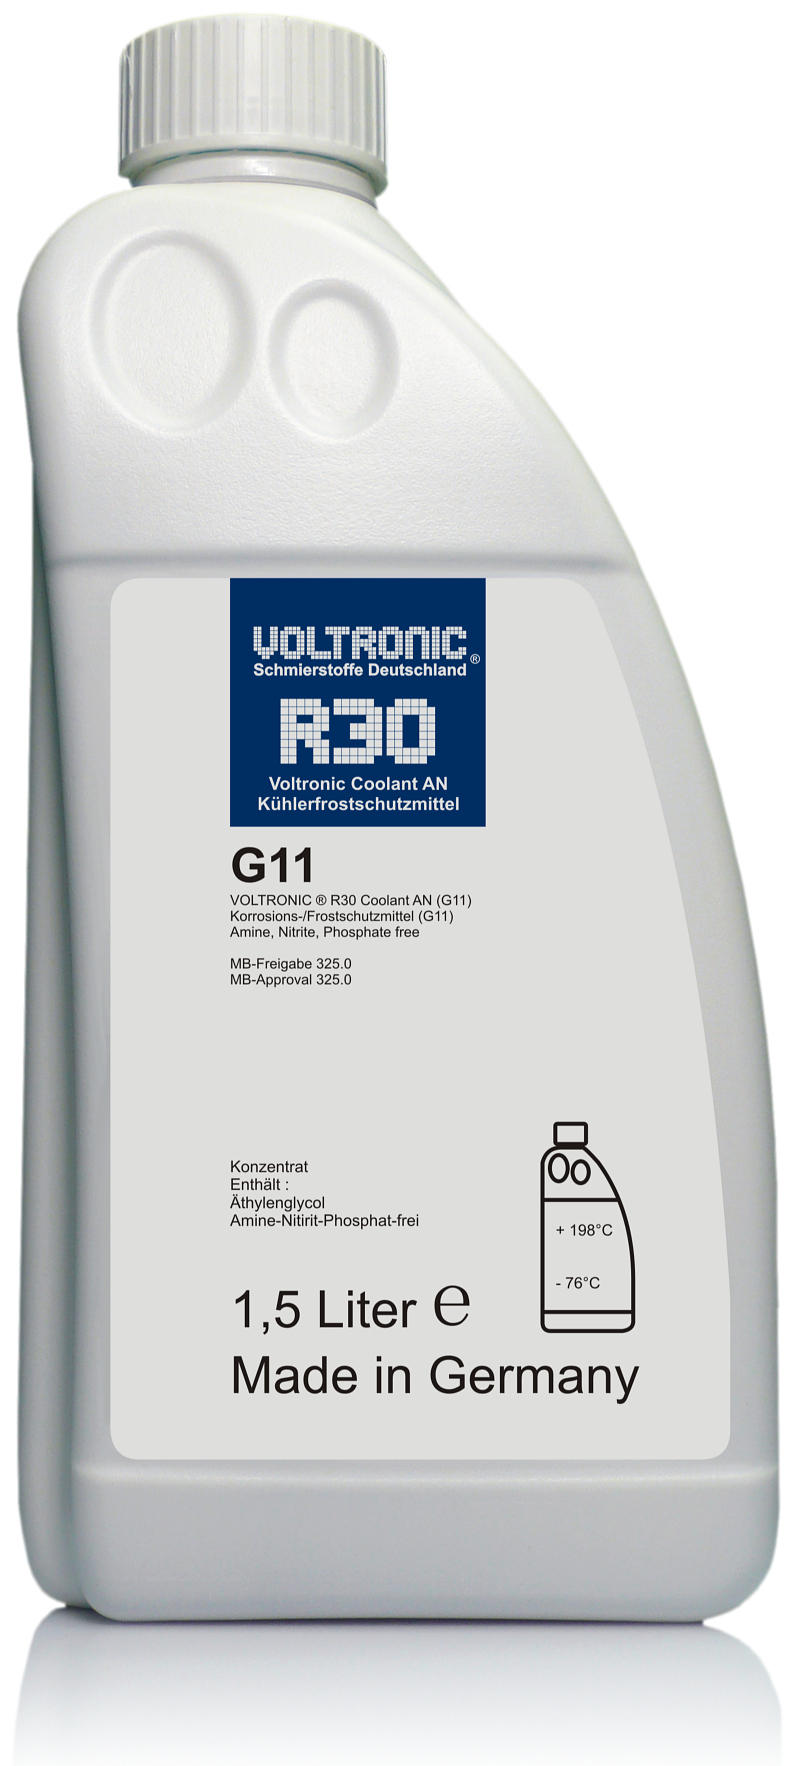 VOLTRONIC R30 Coolant AN Antifreeze